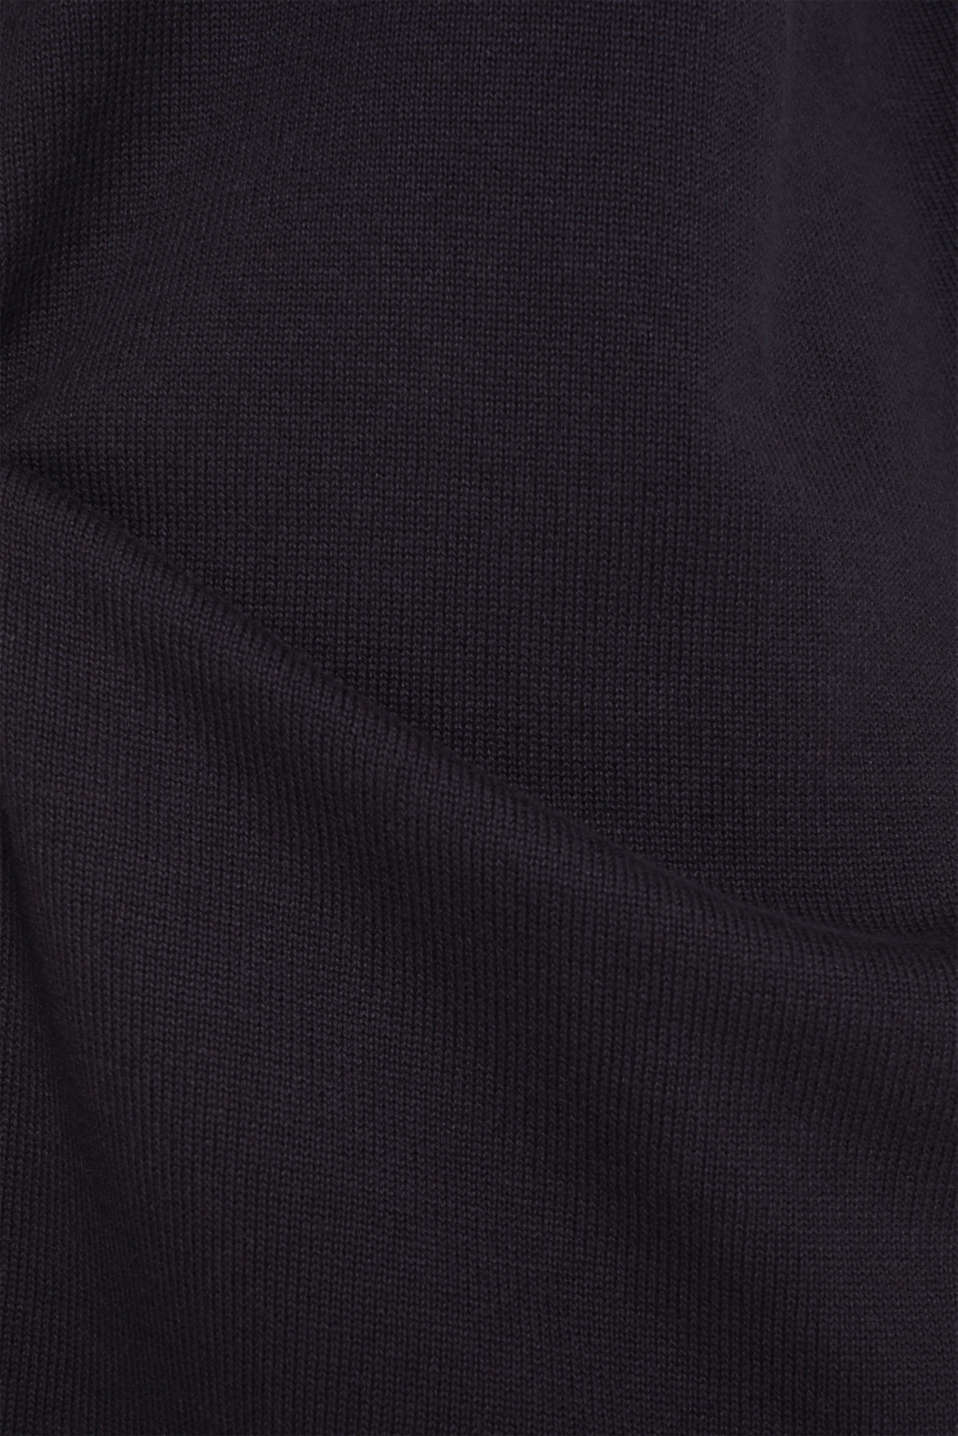 Knit dress with stripes, 100% cotton, NAVY 2, detail image number 5